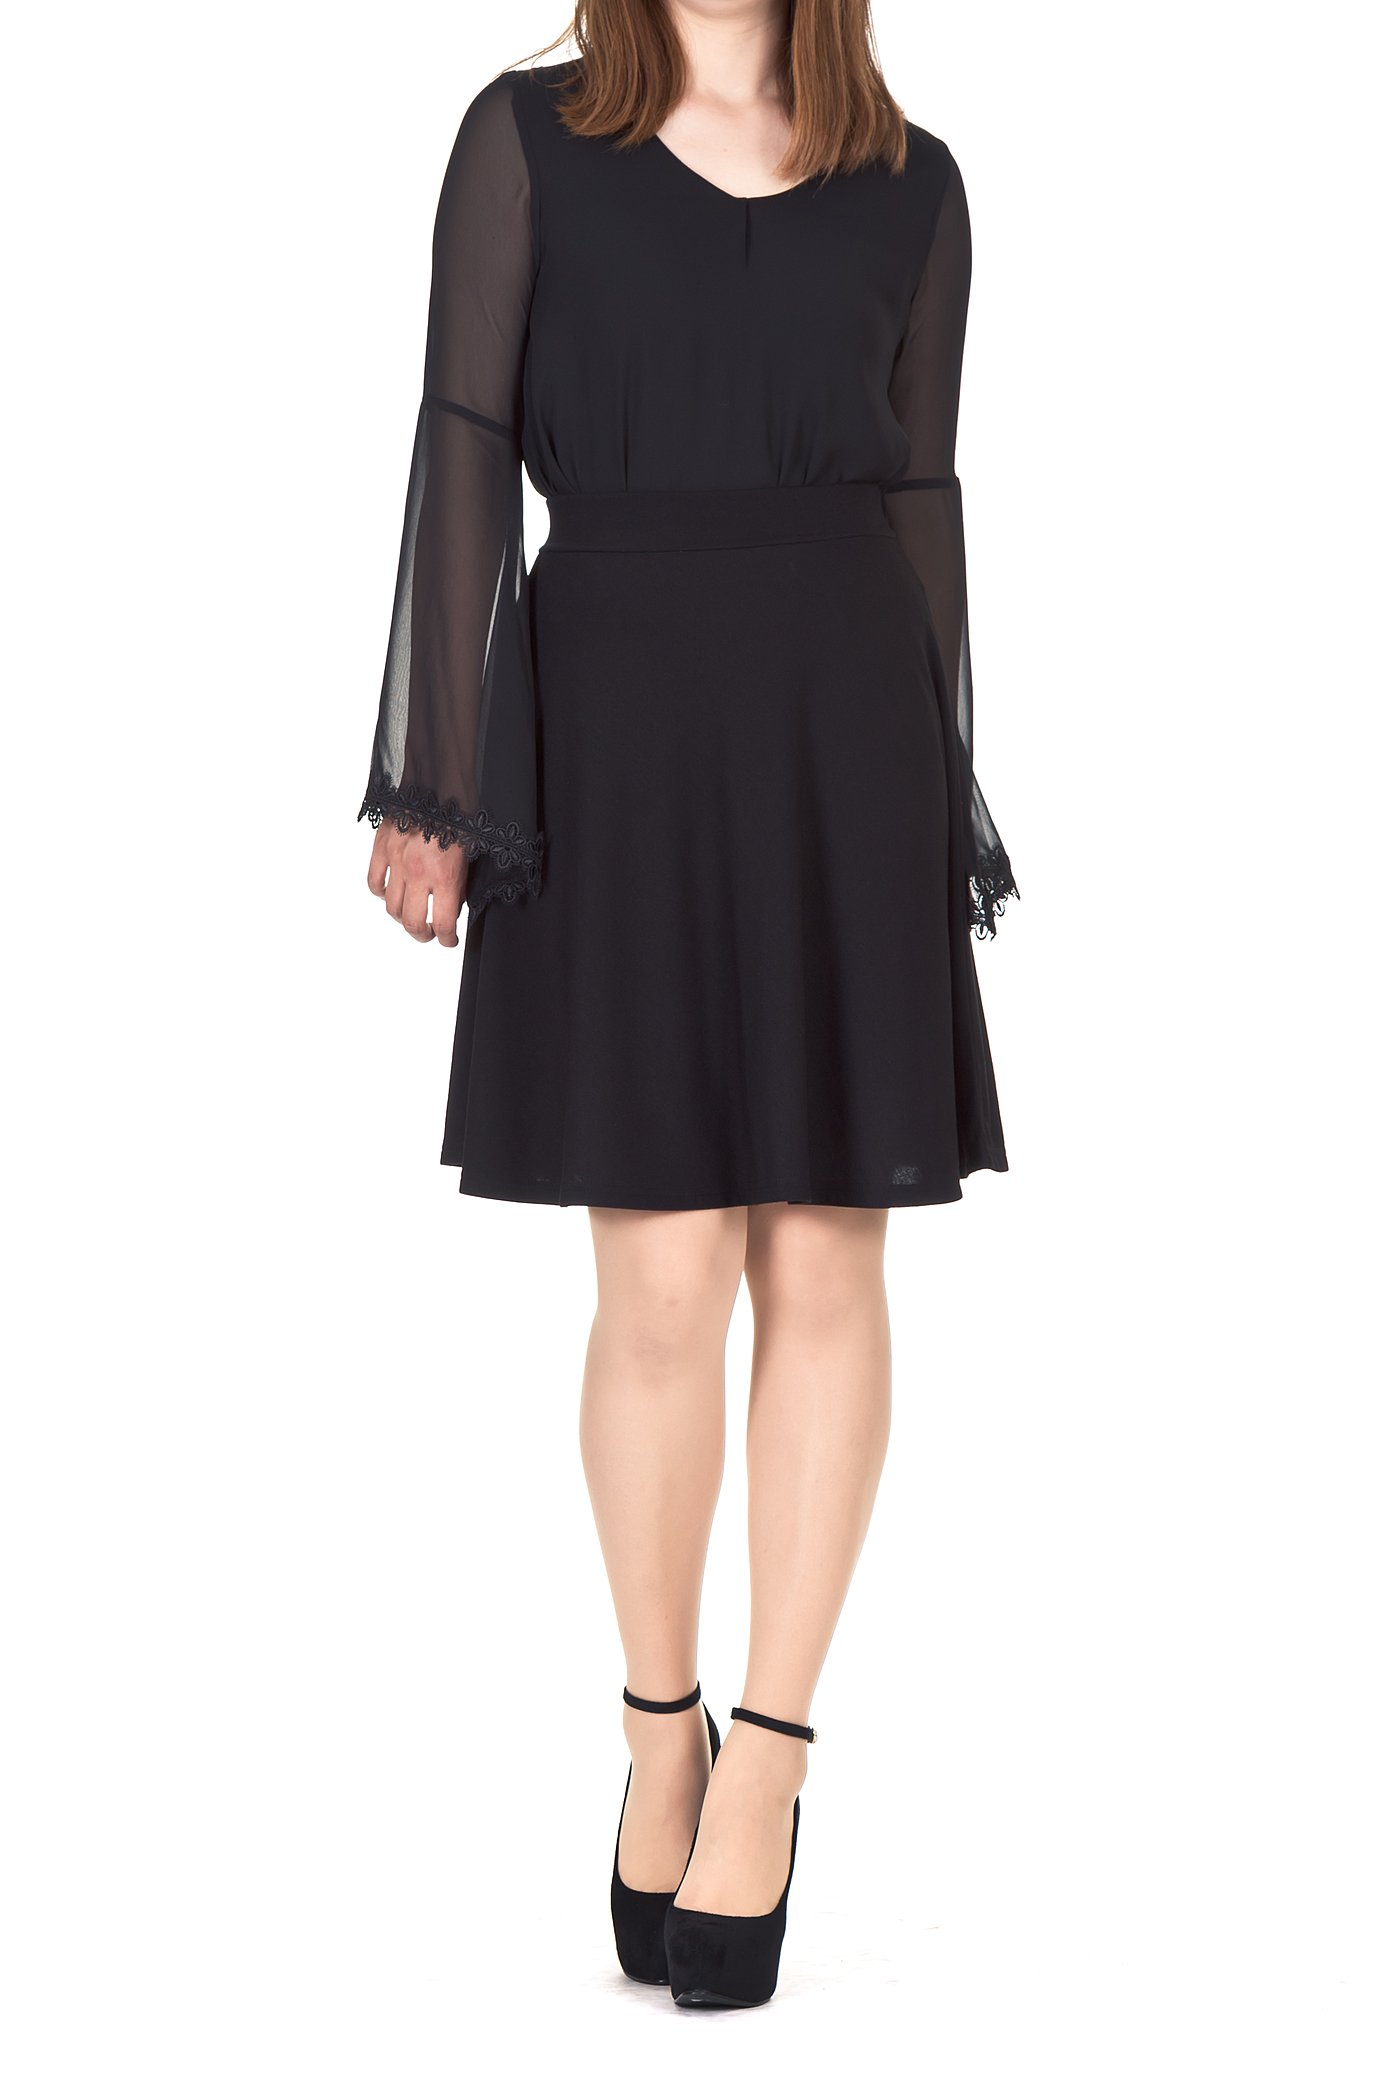 Simple Stretch A-line Flared Knee Length Skirt (XL, Knee Black) by Dani's Choice (Image #3)